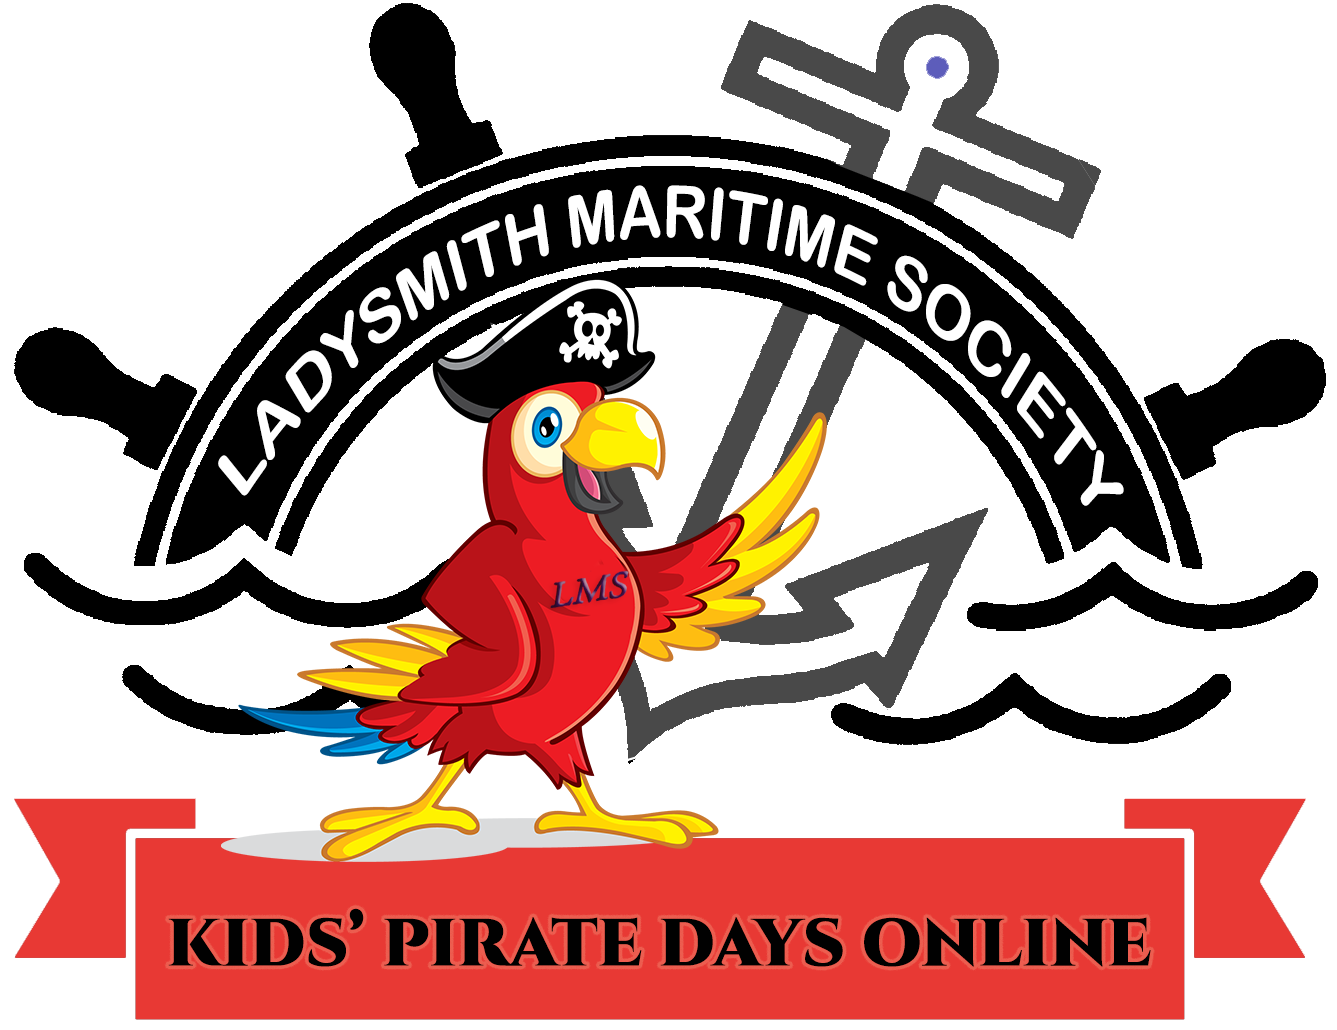 Kids' Pirate Days Online Logo